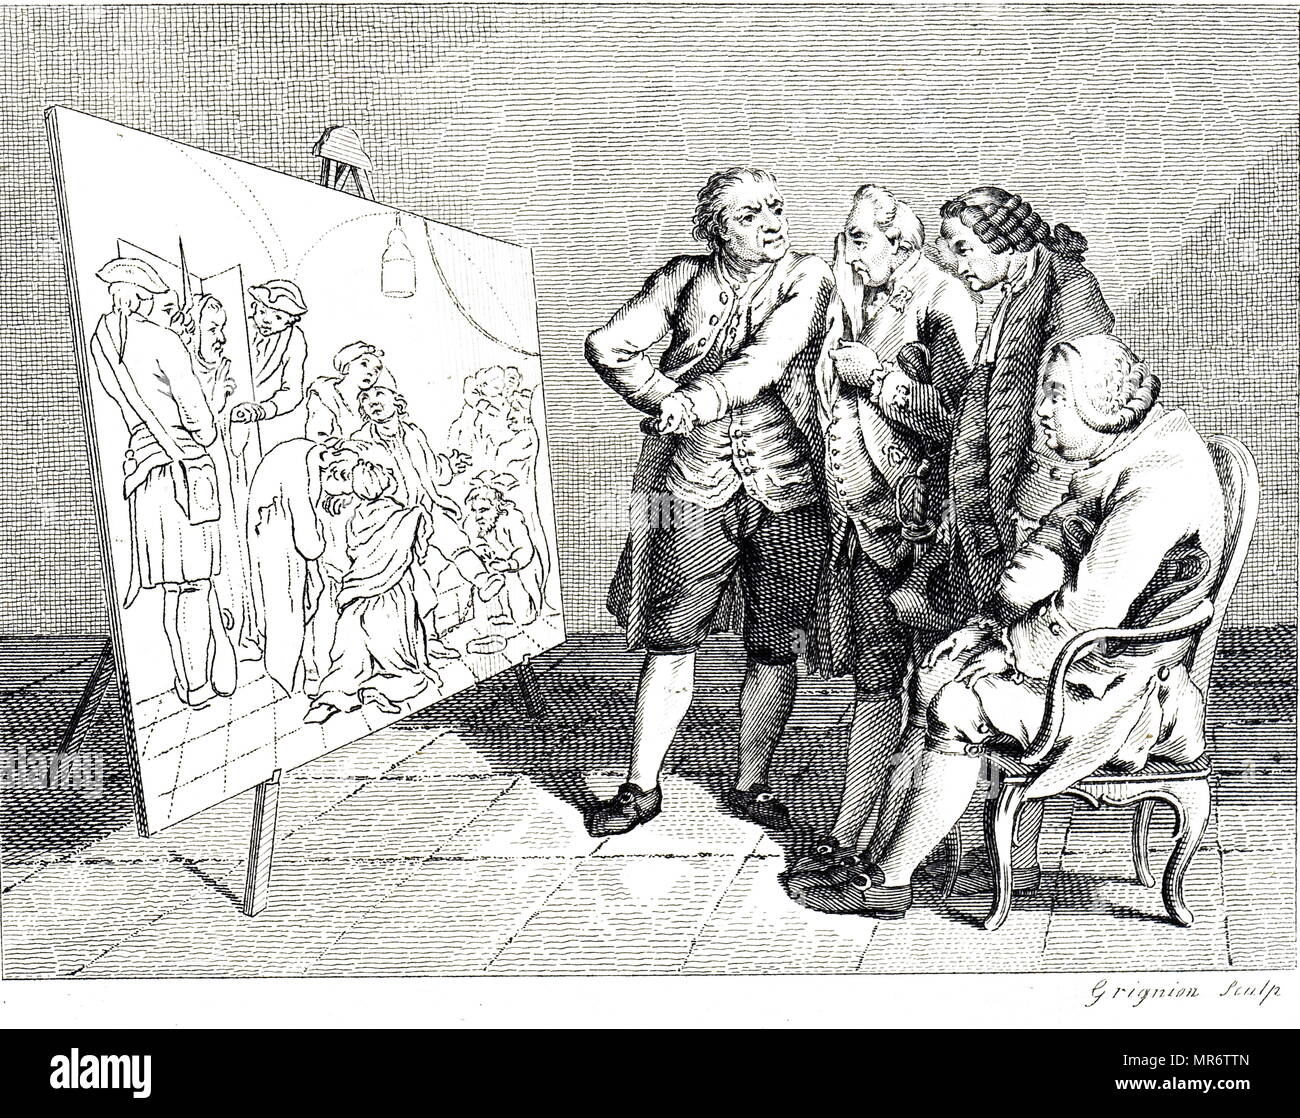 Engraving depicting four connoisseur's looking at Daniel Chodowiecki's painting. Daniel Chodowiecki (1726-1801) a Polish-and later German- painter and printmaker.  Engraving by Reynolds Grignion.  Dated 18th century - Stock Image